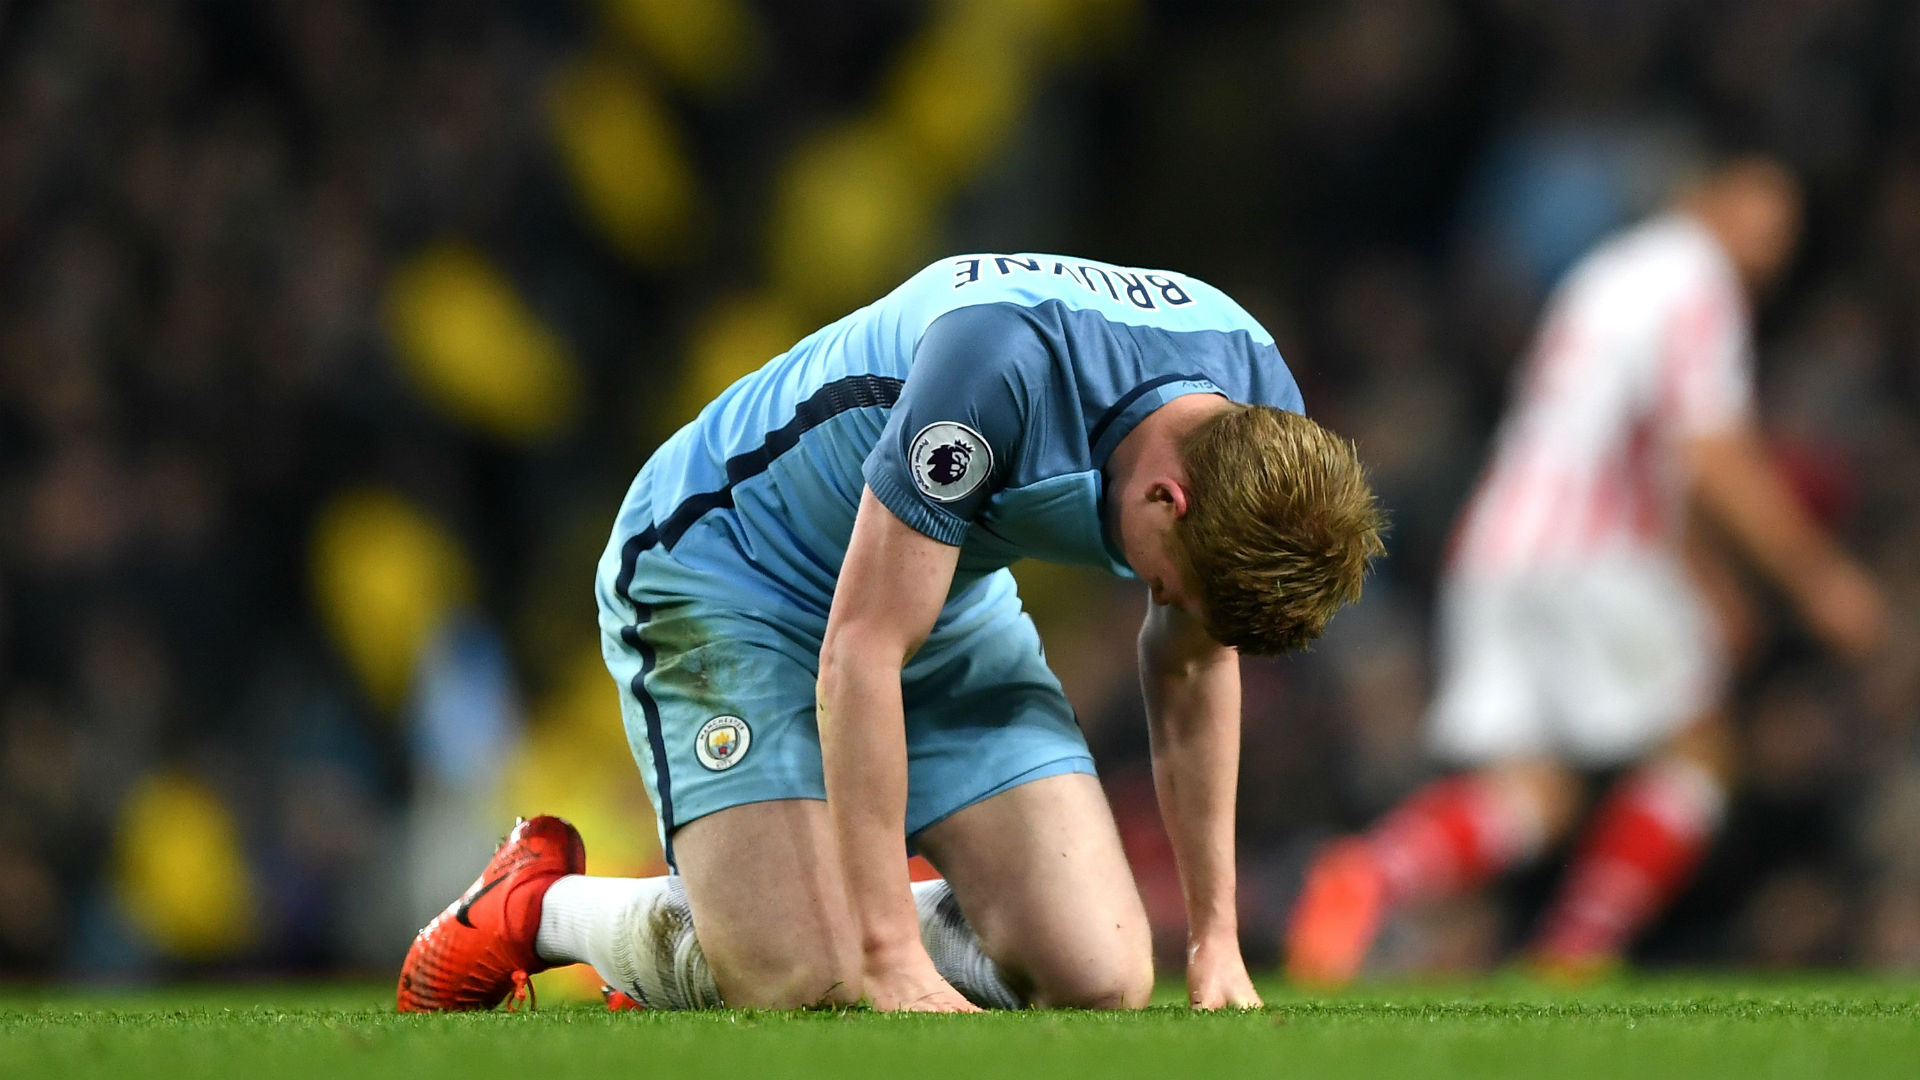 De Bruyne Man City Stoke